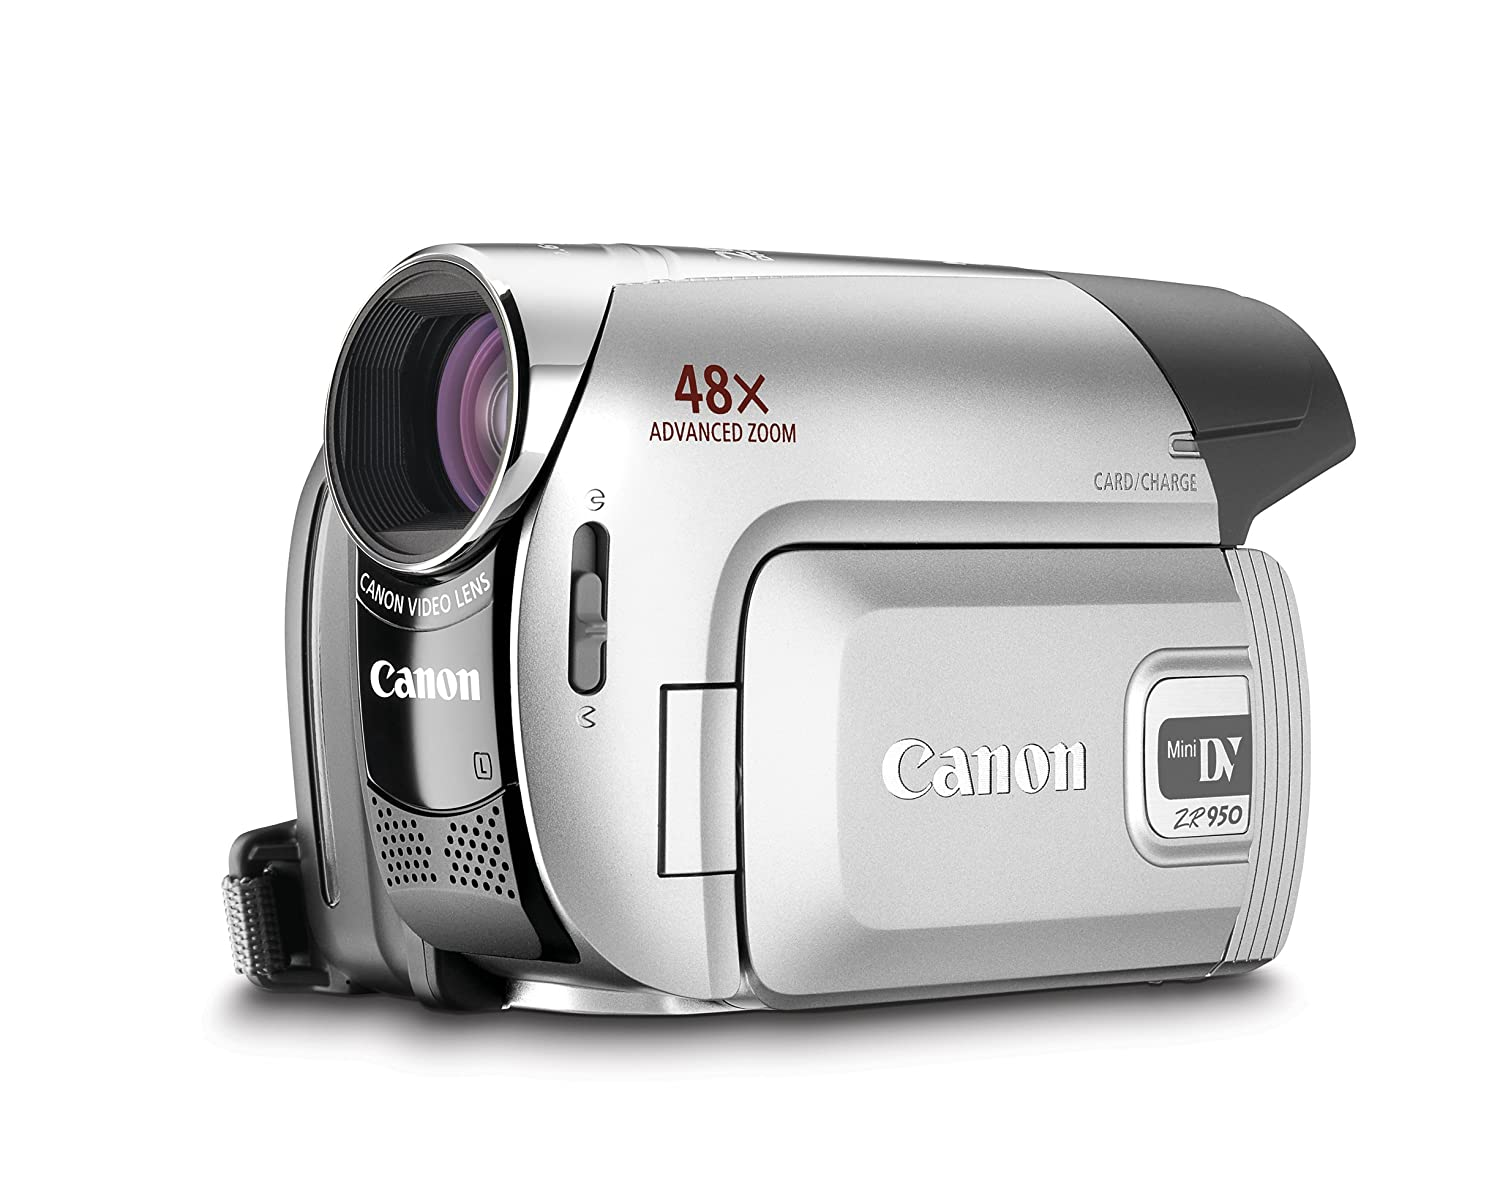 amazon com canon zr950 1 07mp minidv camcorder with 37x optical rh amazon com Canon Printer Manual Camcorder Canon ZR930